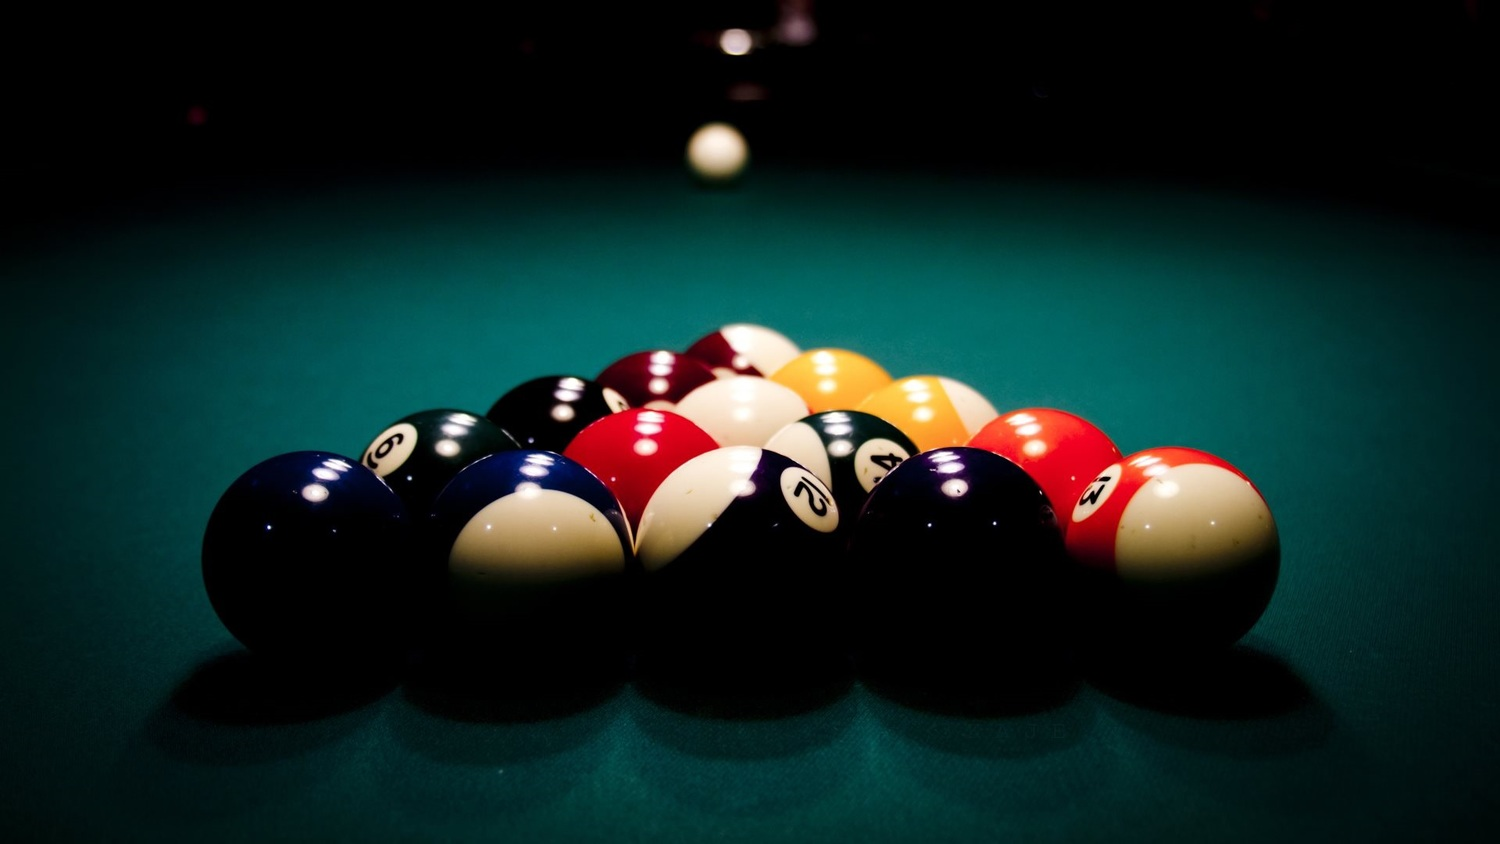 Billiard Backgrounds, Compatible - PC, Mobile, Gadgets| 1500x844 px